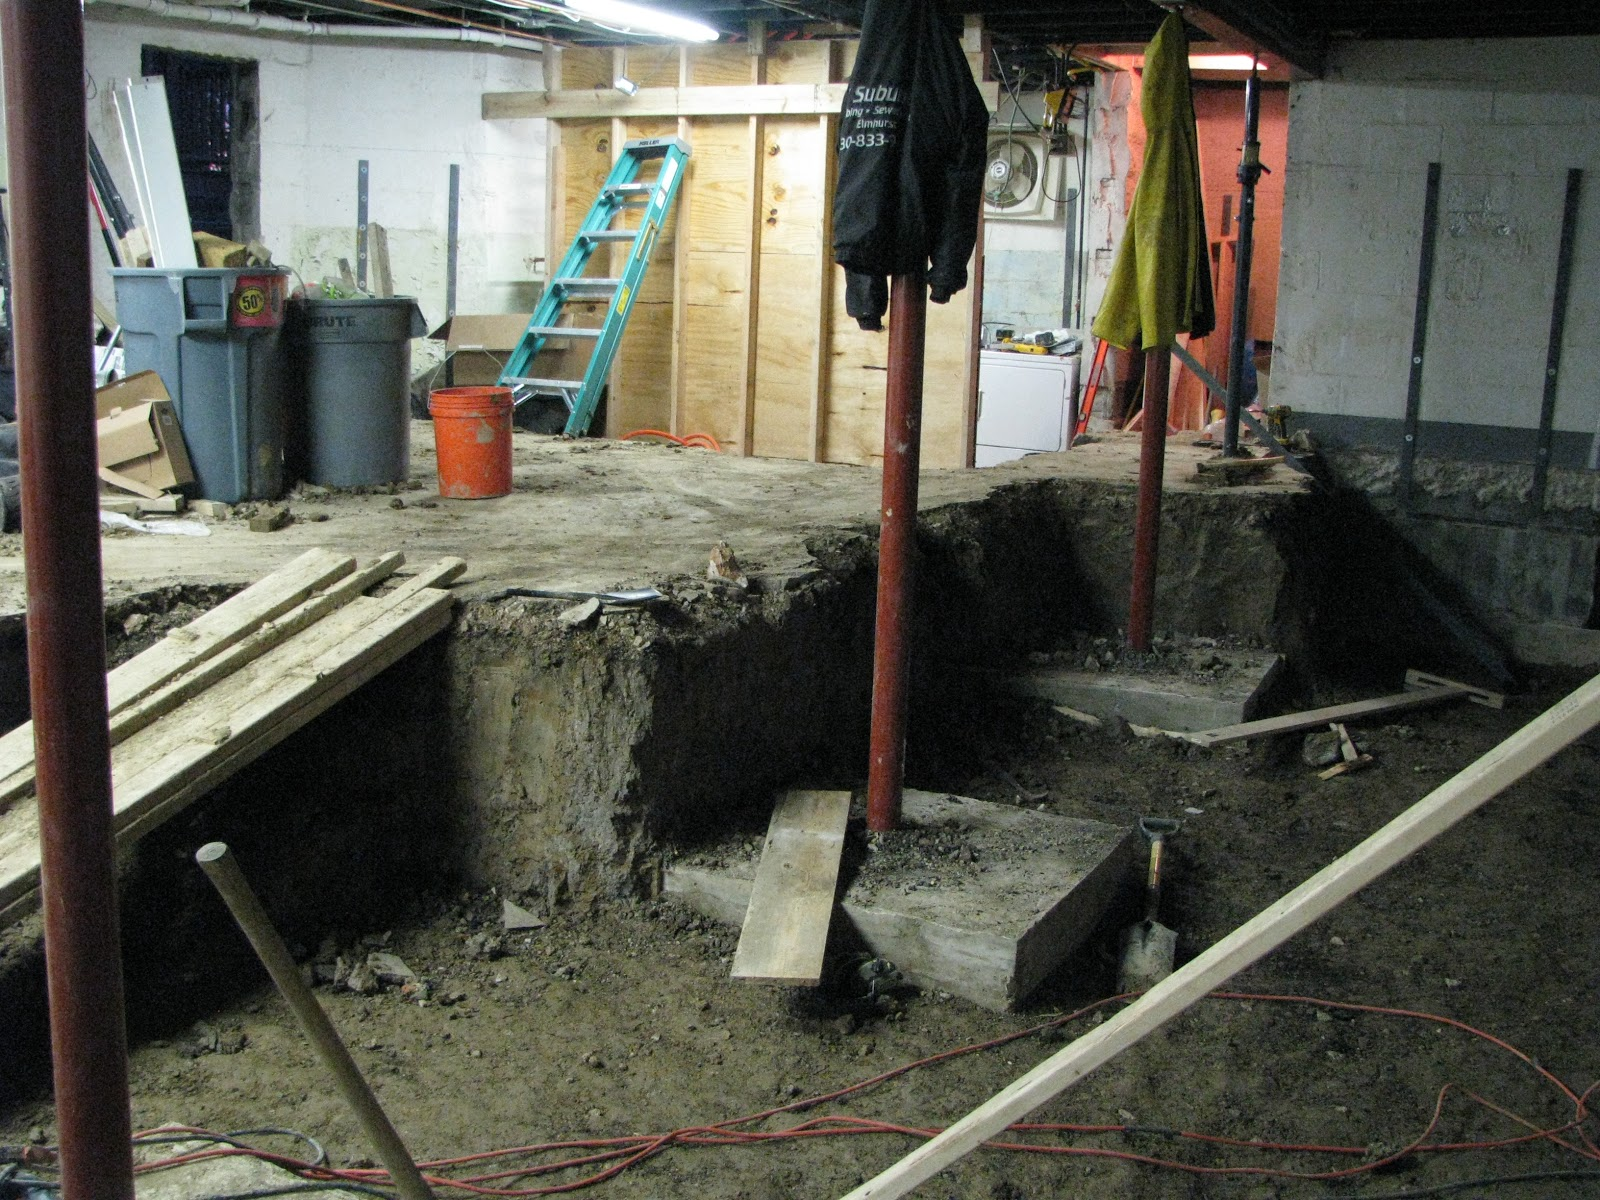 adventures of d and v adventures in the basement big dig part 2